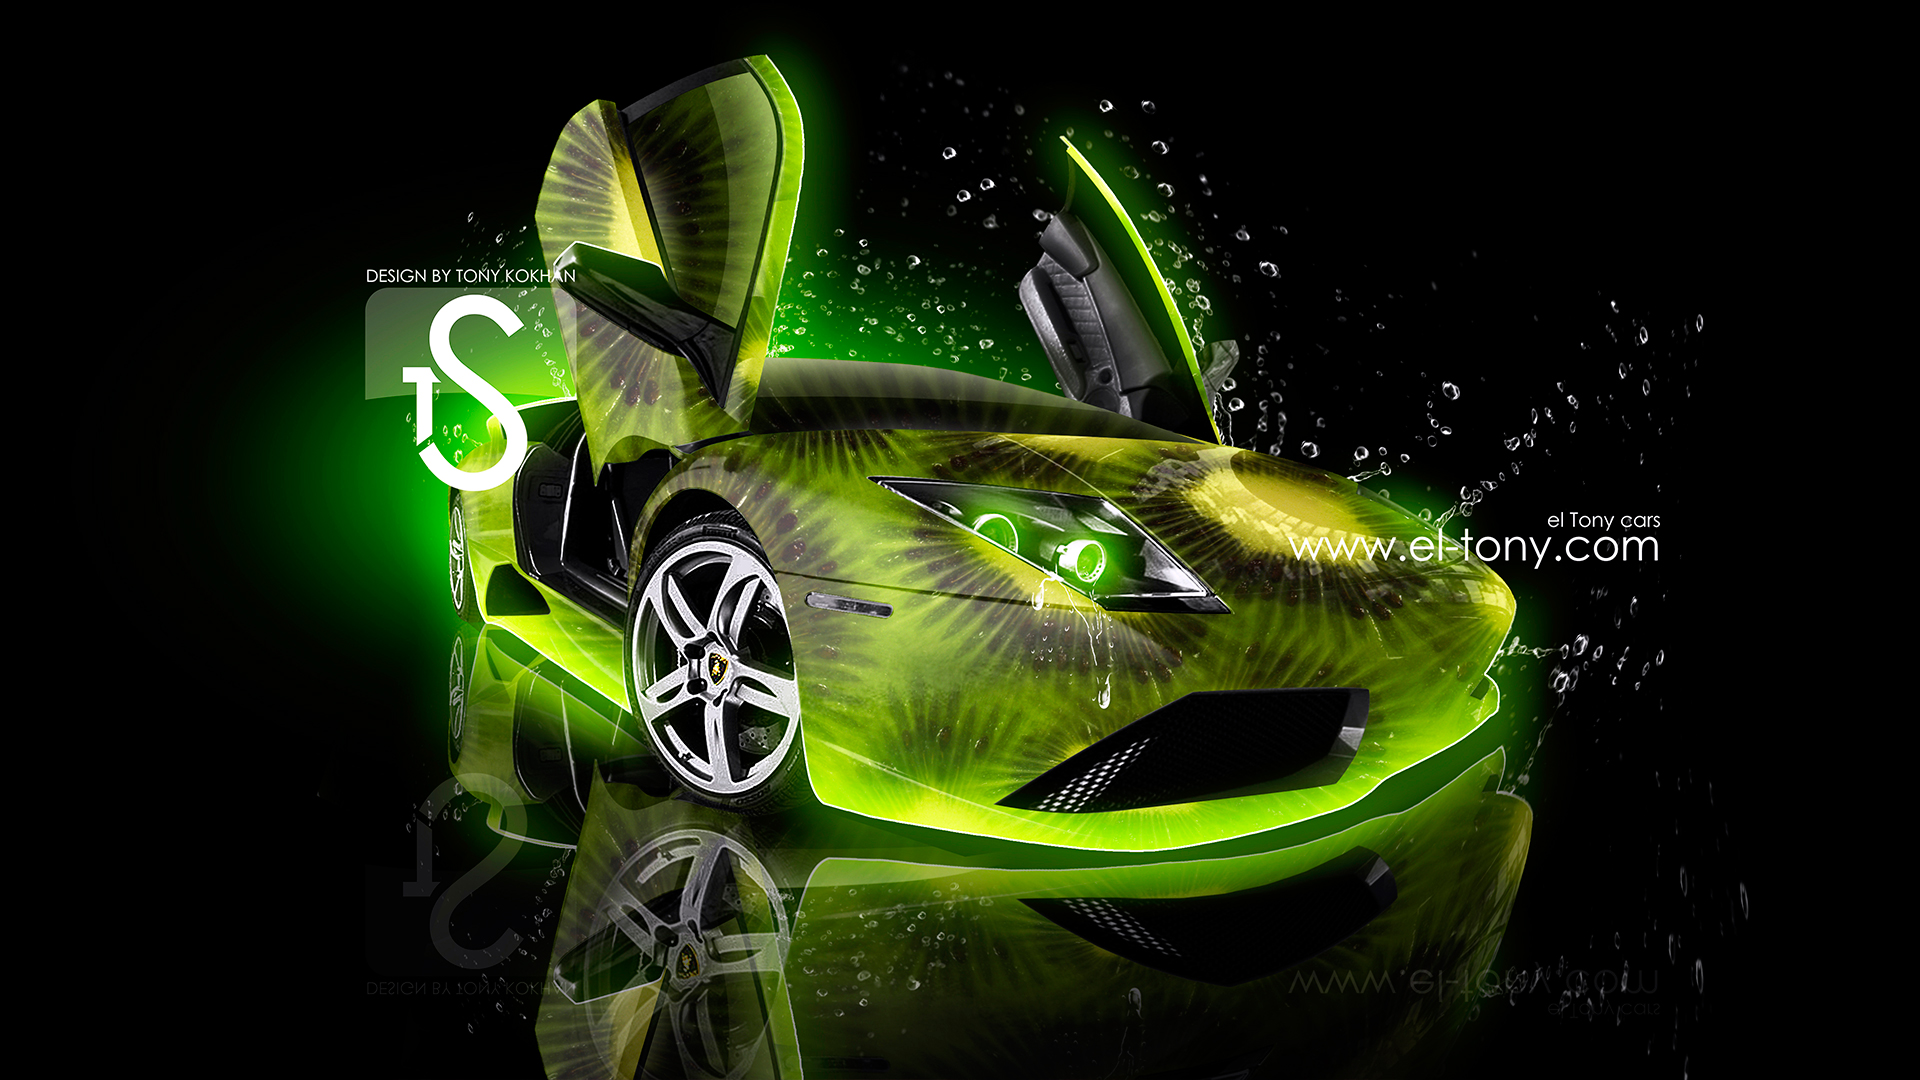 Merveilleux ... Lamborghini Murcielago Kiwi Car 2013 HD Wallpapers Design  ...